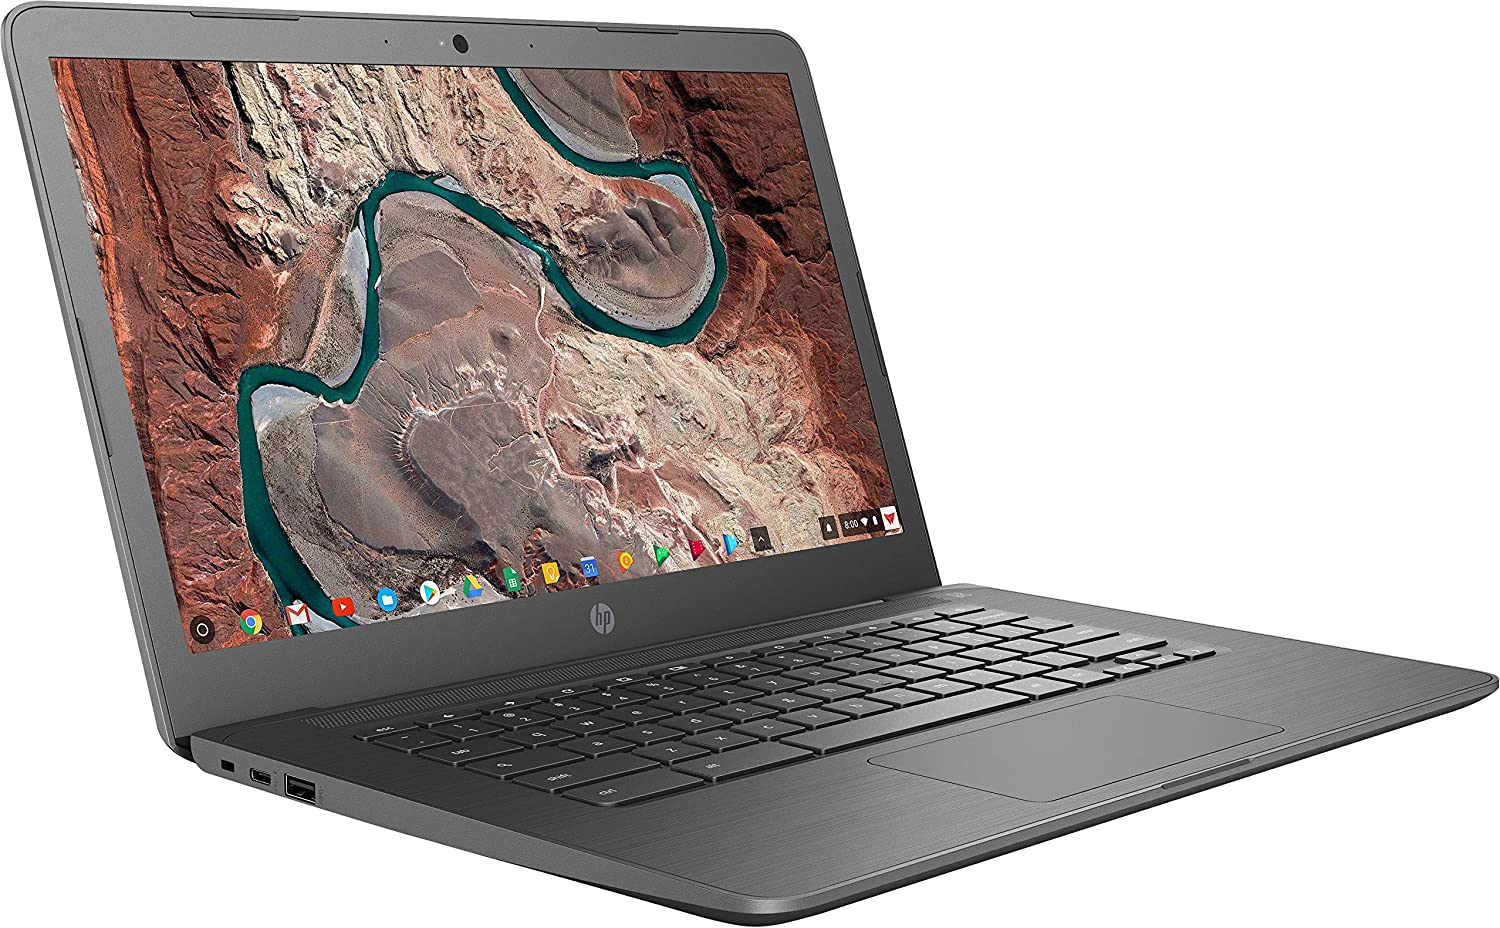 "2019 New HP Chromebook 14"" FHD IPS Anti-Glare Micro-Edge (1920 x 1080), AMD Core A4-9120, 4GB DDR4, 32GB, Webcam, 802.11ac, Bluetooth 4.2, USB 3.1 Type-C + Sleeve + Wireless Mouse (Renewed)"